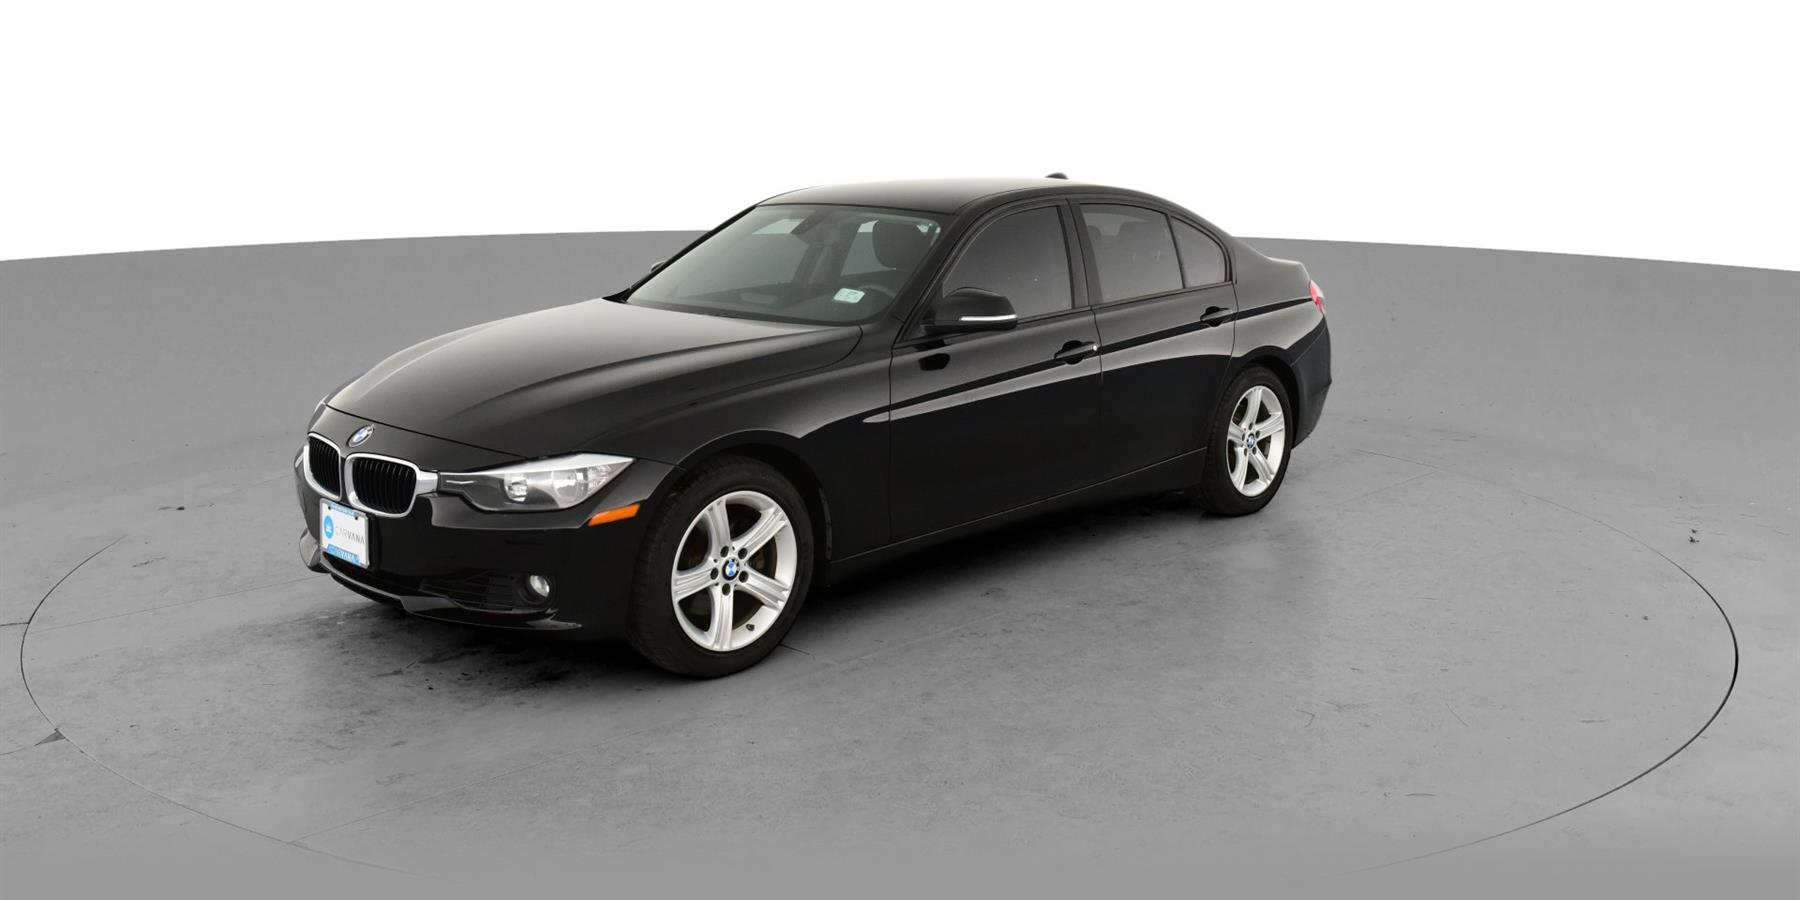 2013 Bmw 328I Windshield Replacement Cost 2013 bmw 3 series 328i sedan 4d for sale | carvana®